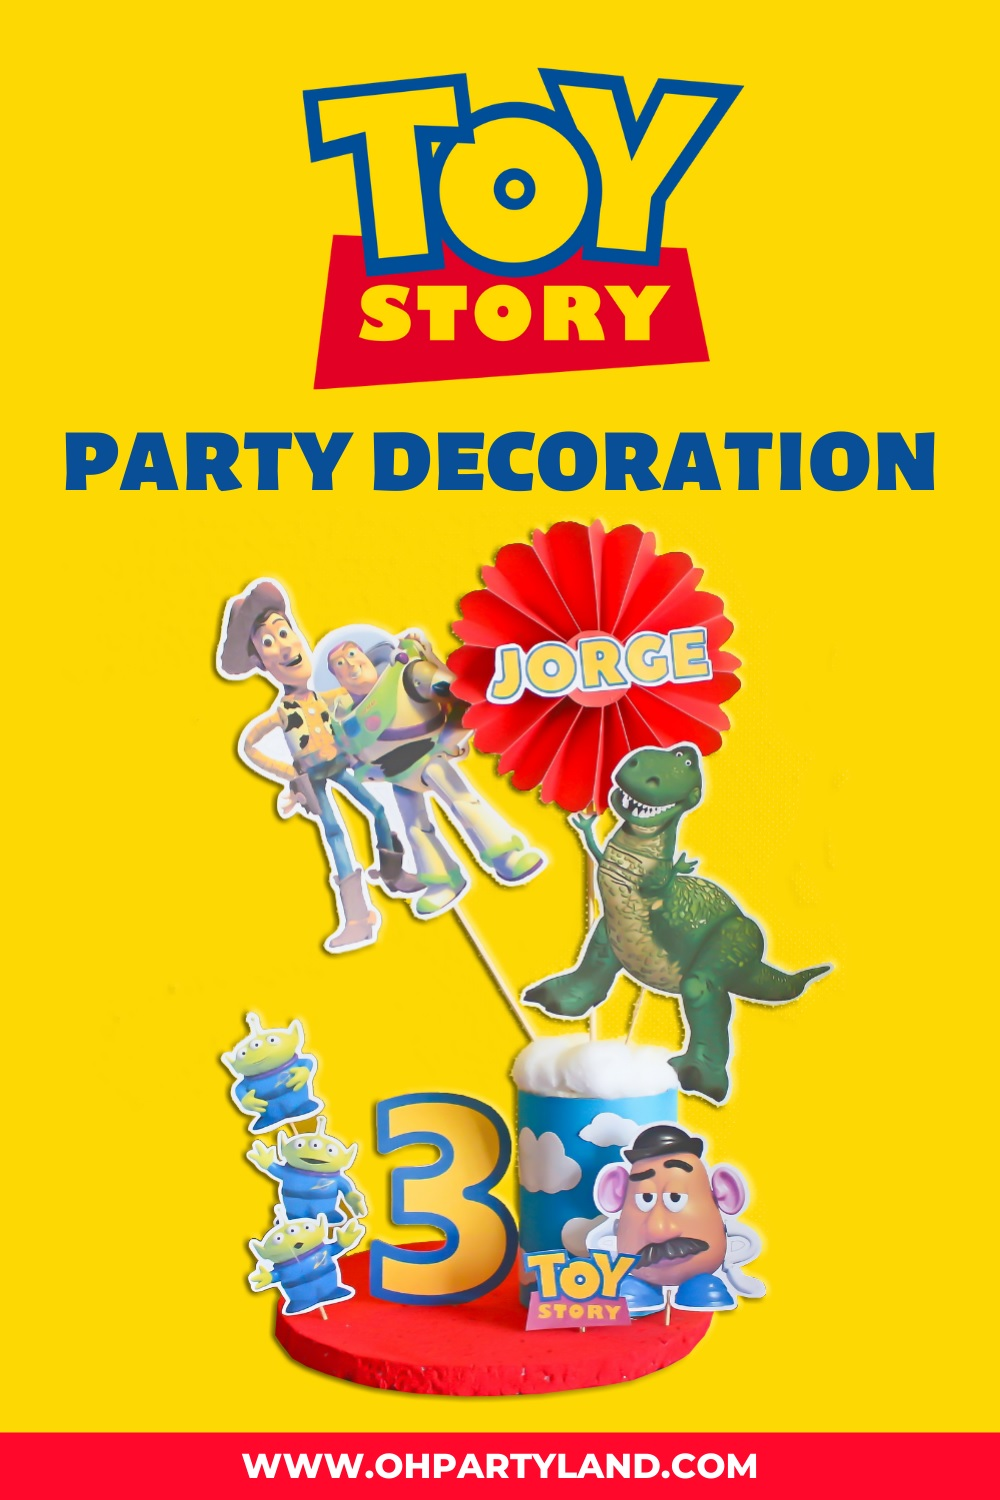 toy-story-party-decorations